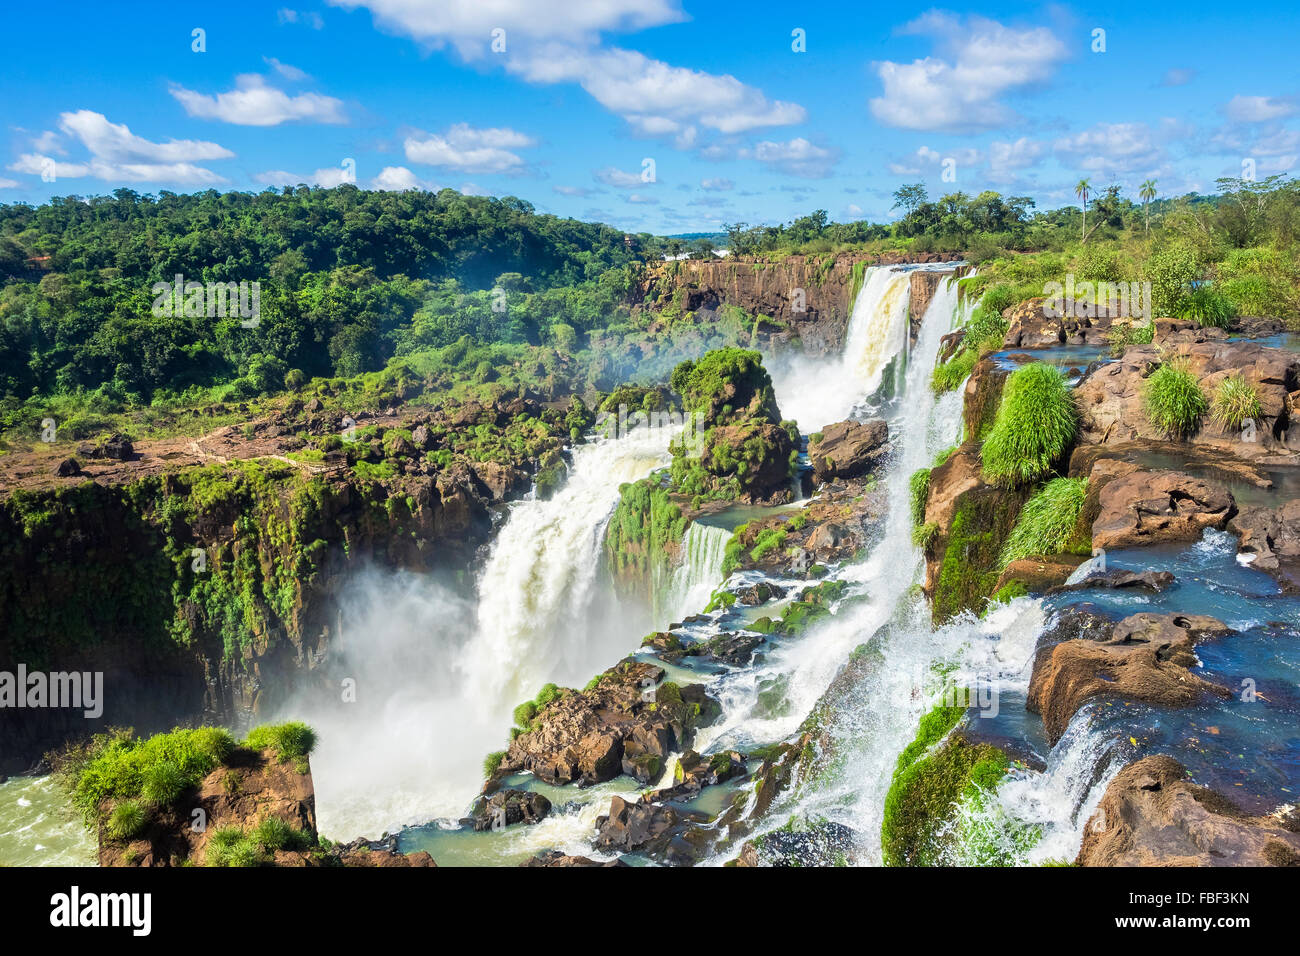 Iguazu Falls, on the border of Argentina and Brazil. - Stock Image